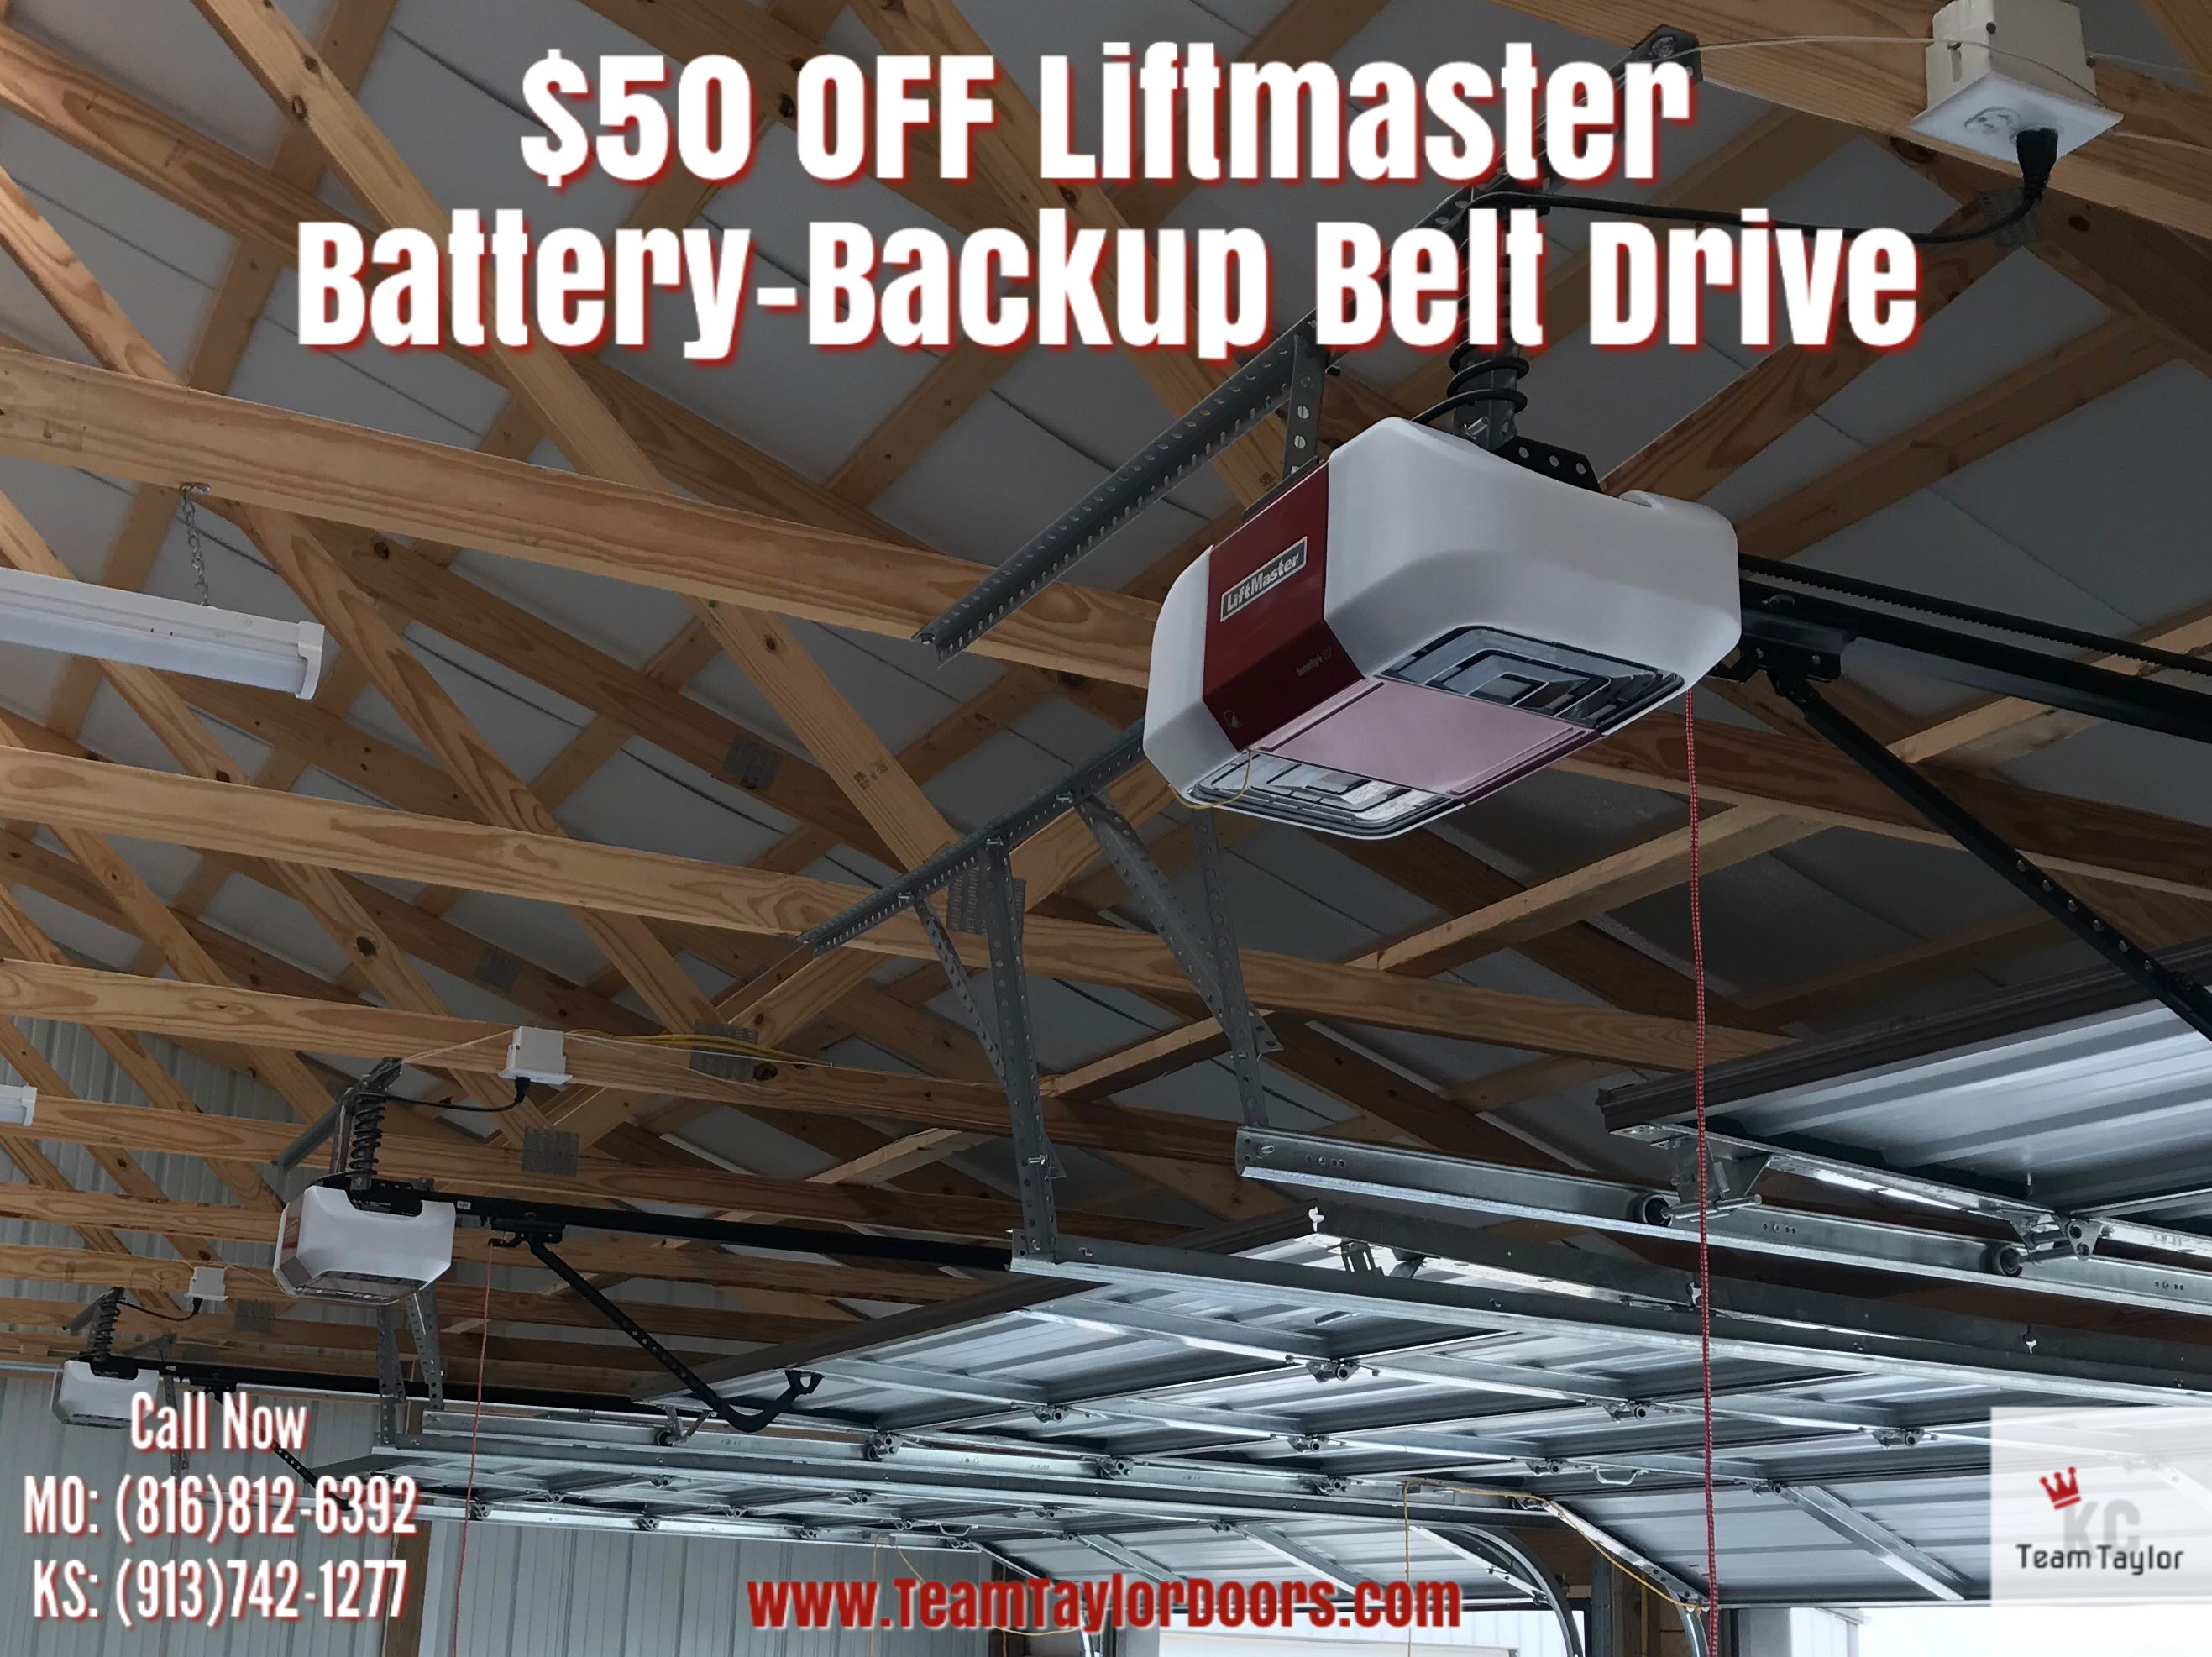 Quiet Dependable And Discounted Click The Link And Schedule Your Liftmaster Garage Do Garage Door Repair Service Garage Door Opener Installation Garage Doors